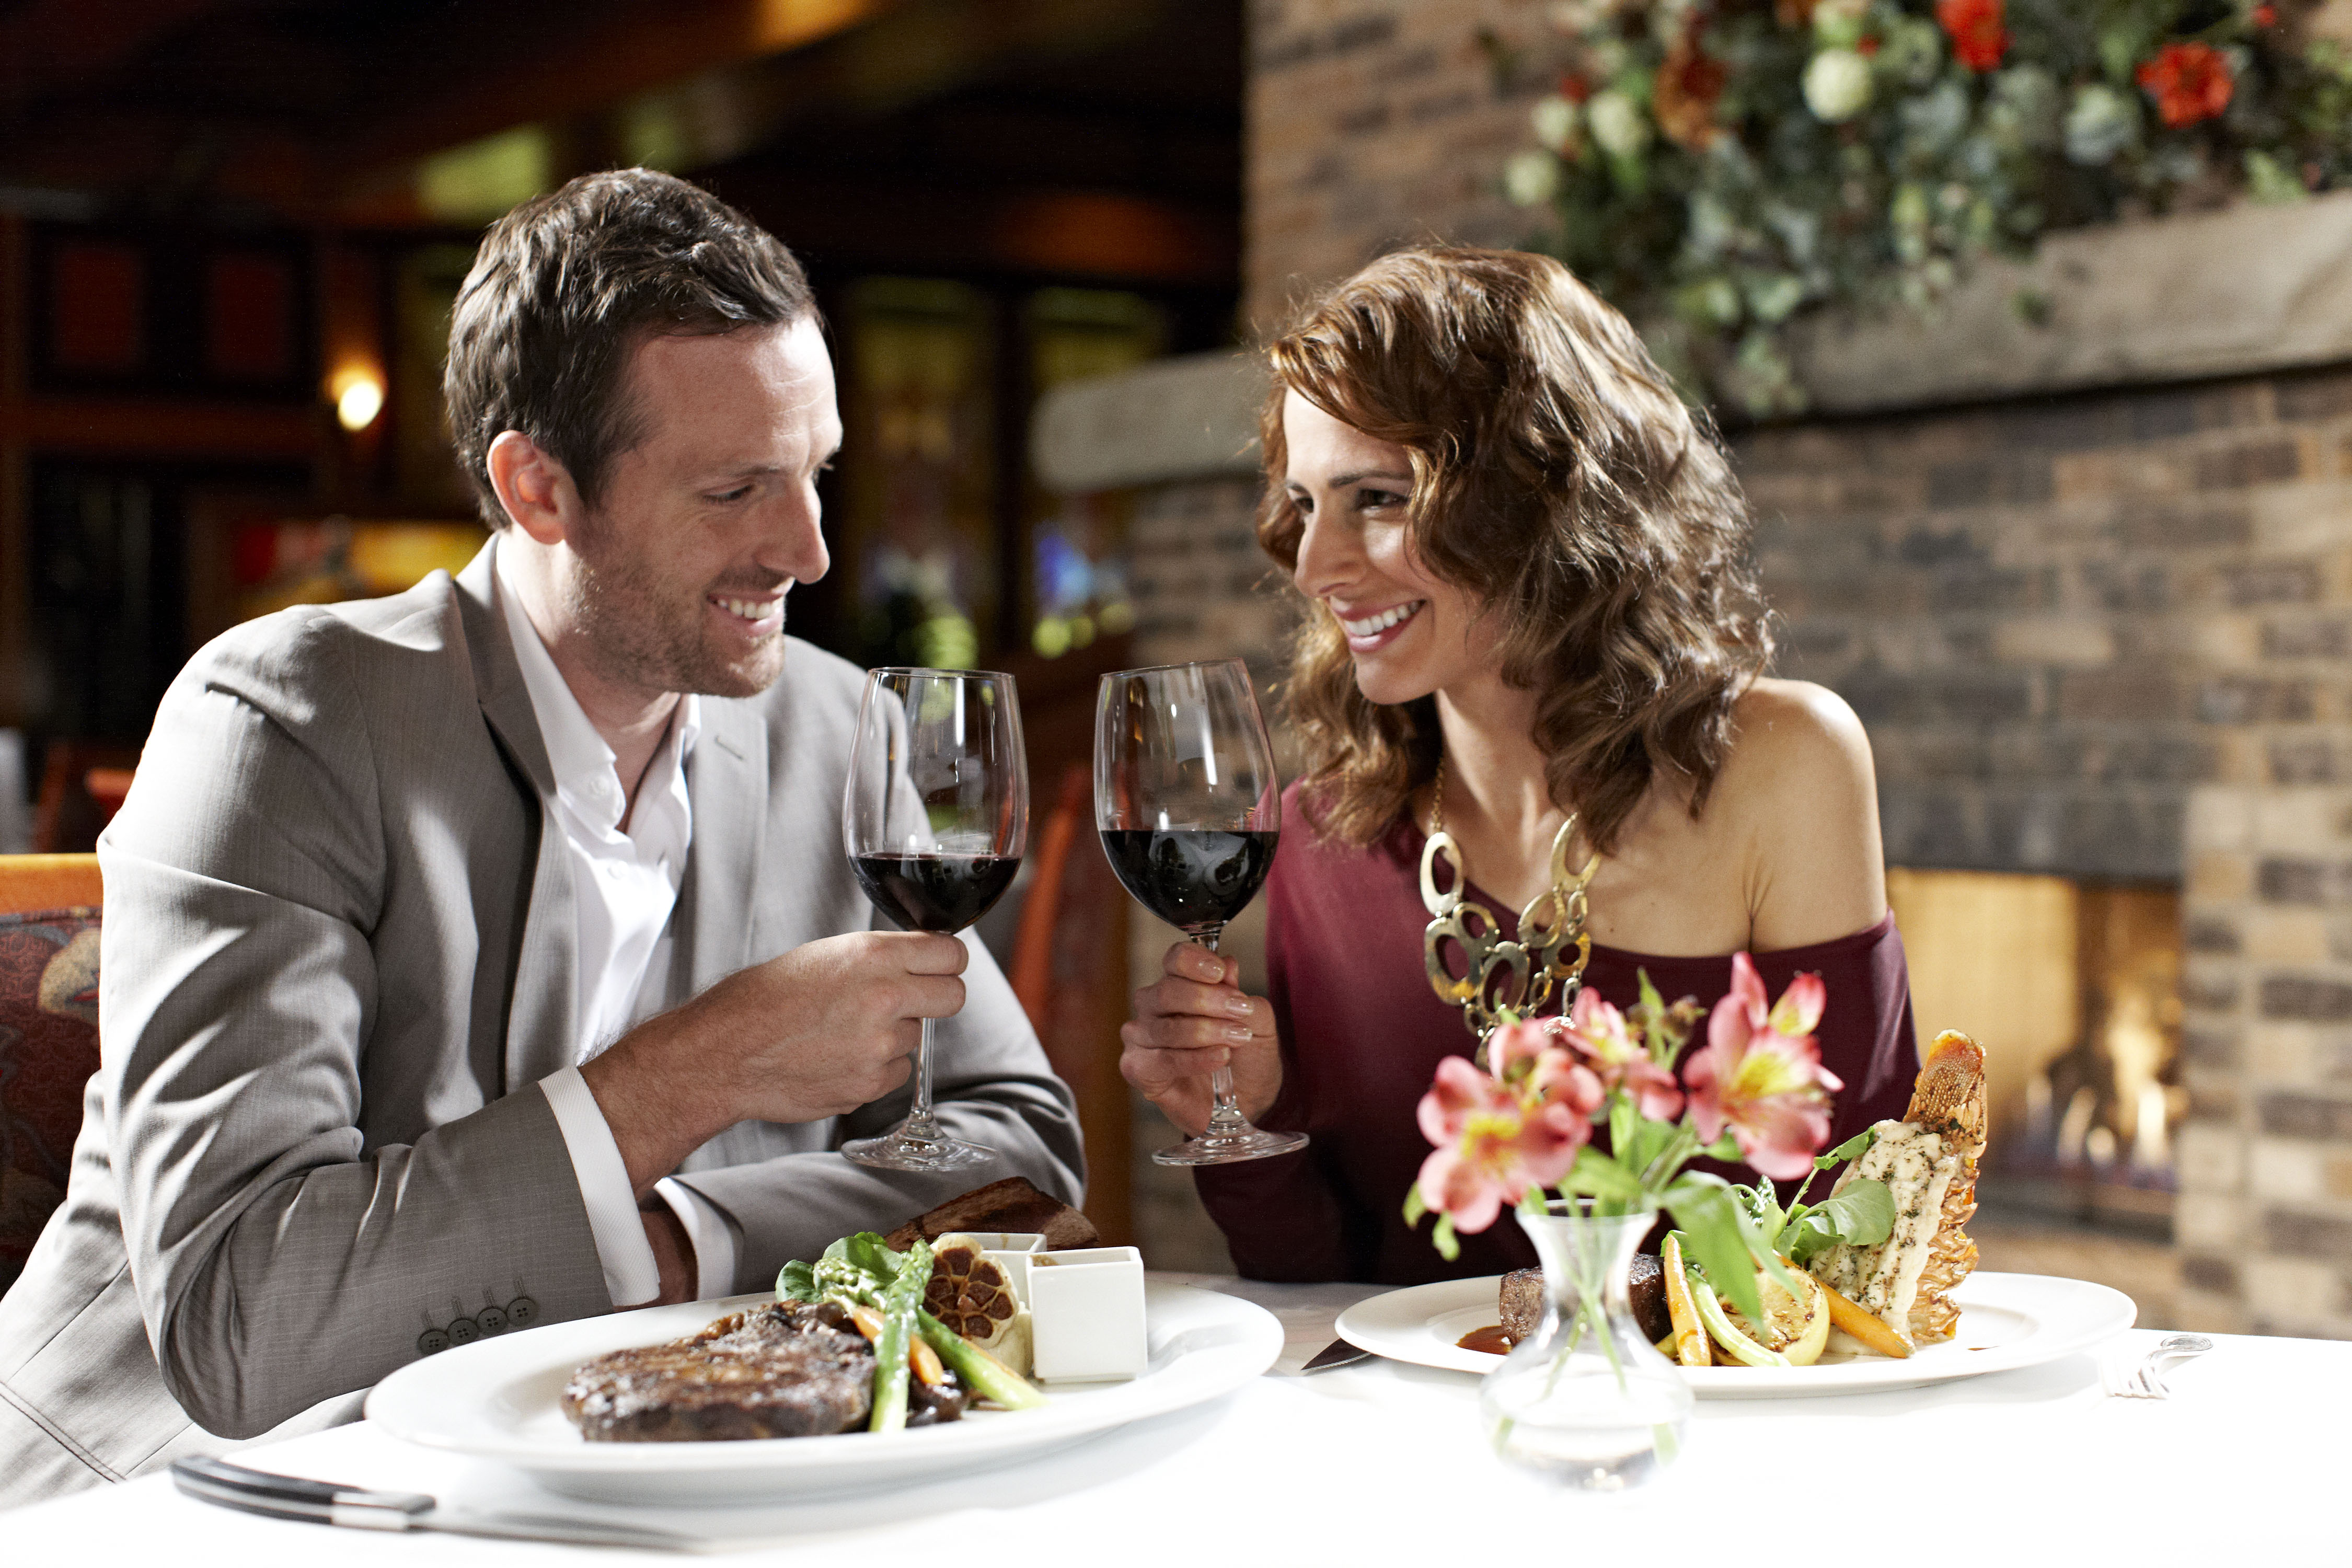 Romantic Dining Spots In Myrtle Beach For Valentines Day